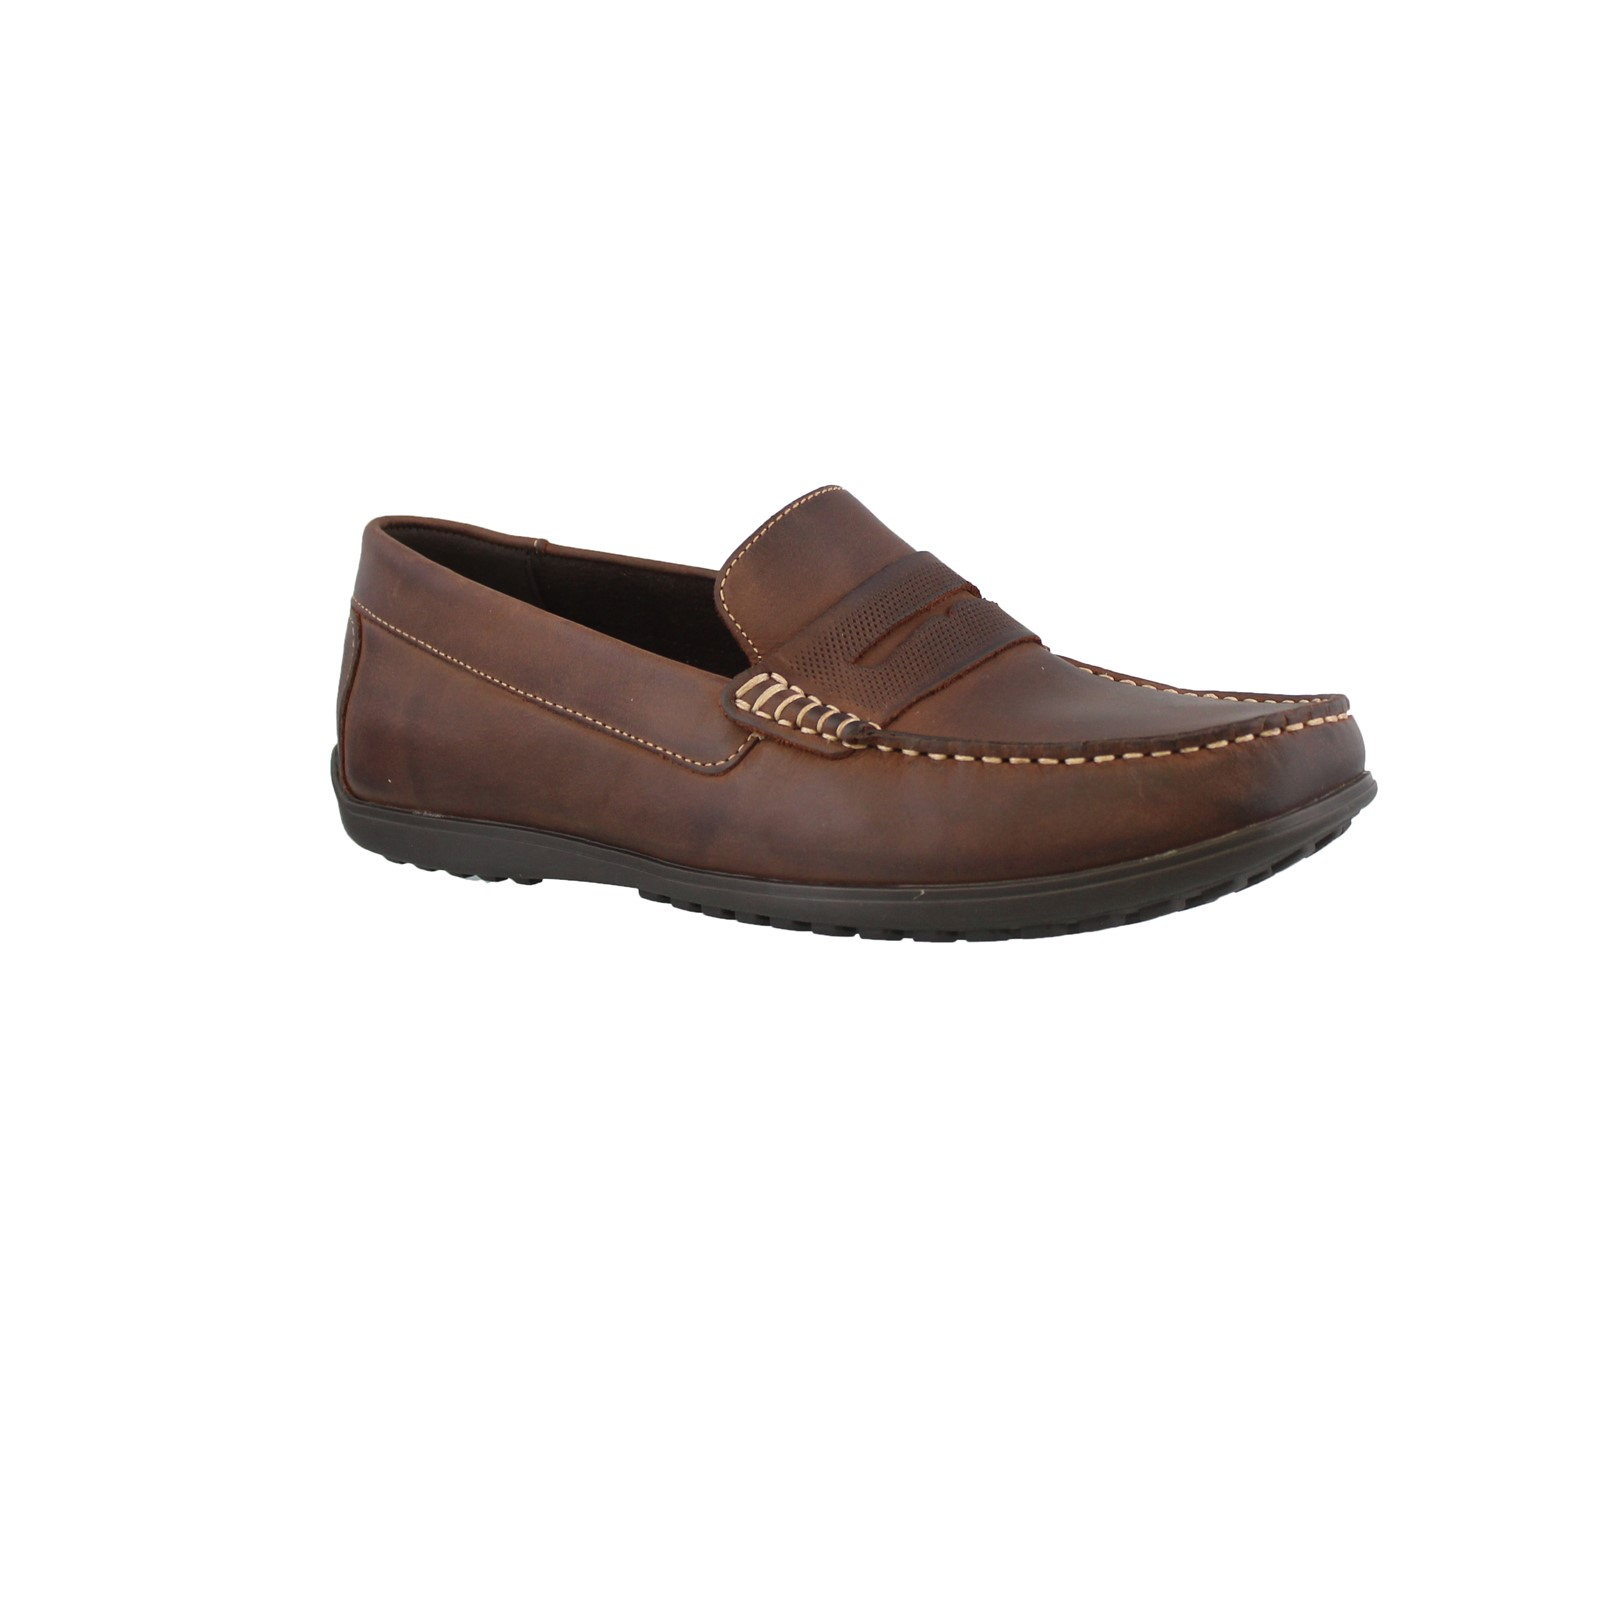 c8fc8179fed Next. add to favorites. Men s Rockport